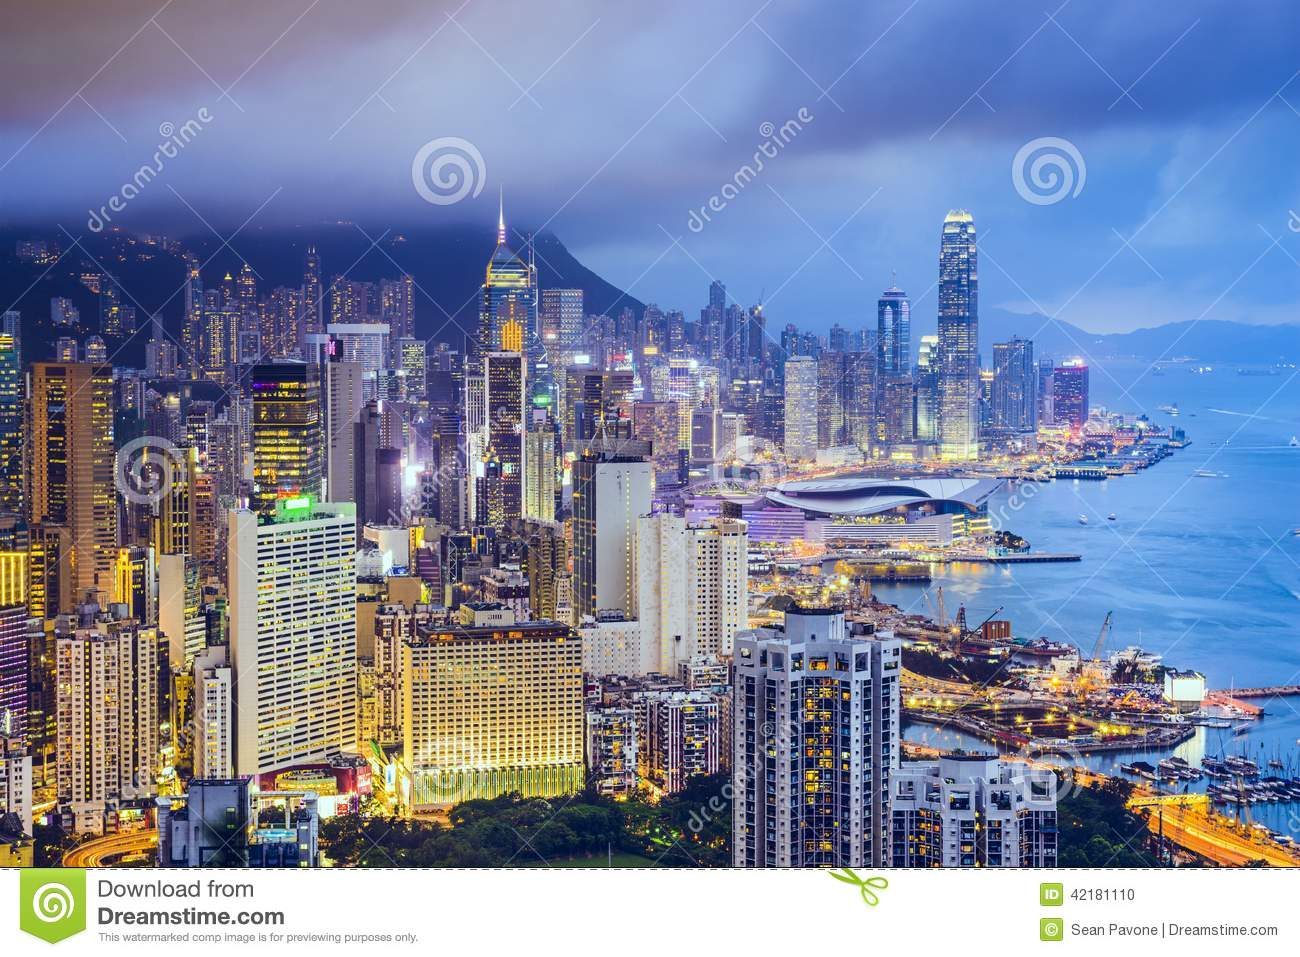 Aug 17, · Tsim Sha Tsui is one of the major tourist and shopping areas of Hong Kong. With a high concentration of hotels, retail shops and commercial offices – it's a/5(95).